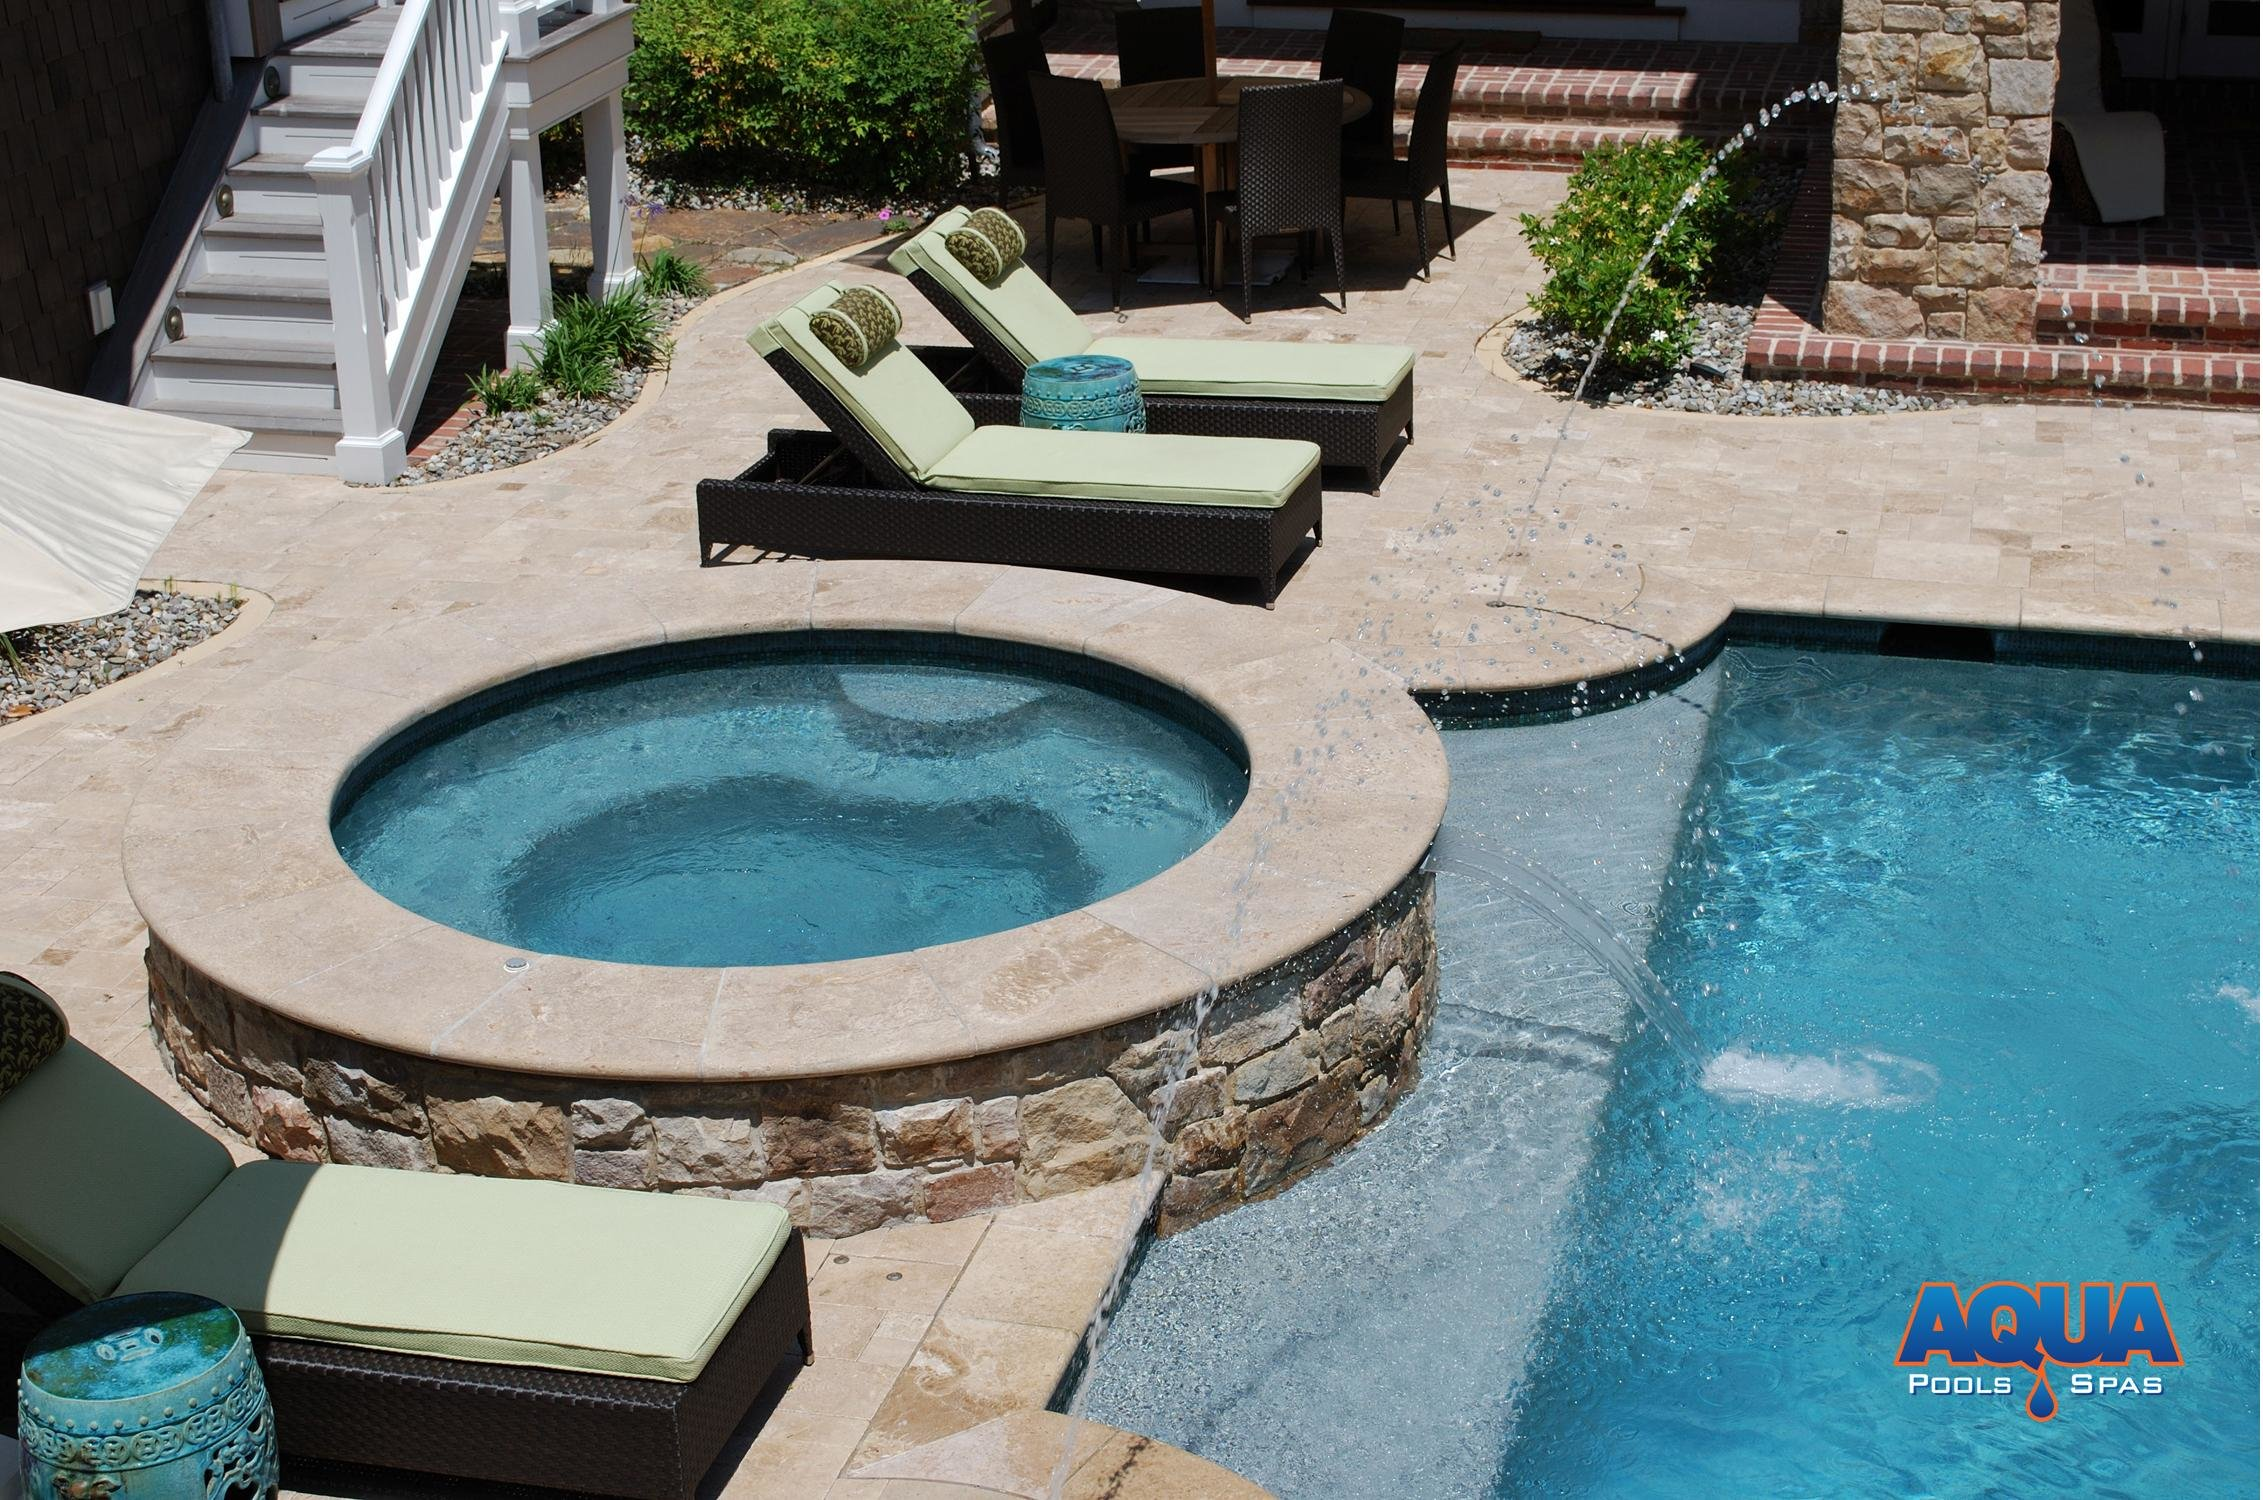 New Custom Spas Custom Gunite Hot Tubs AQUA Pools & Spas Easton Maryland AG92